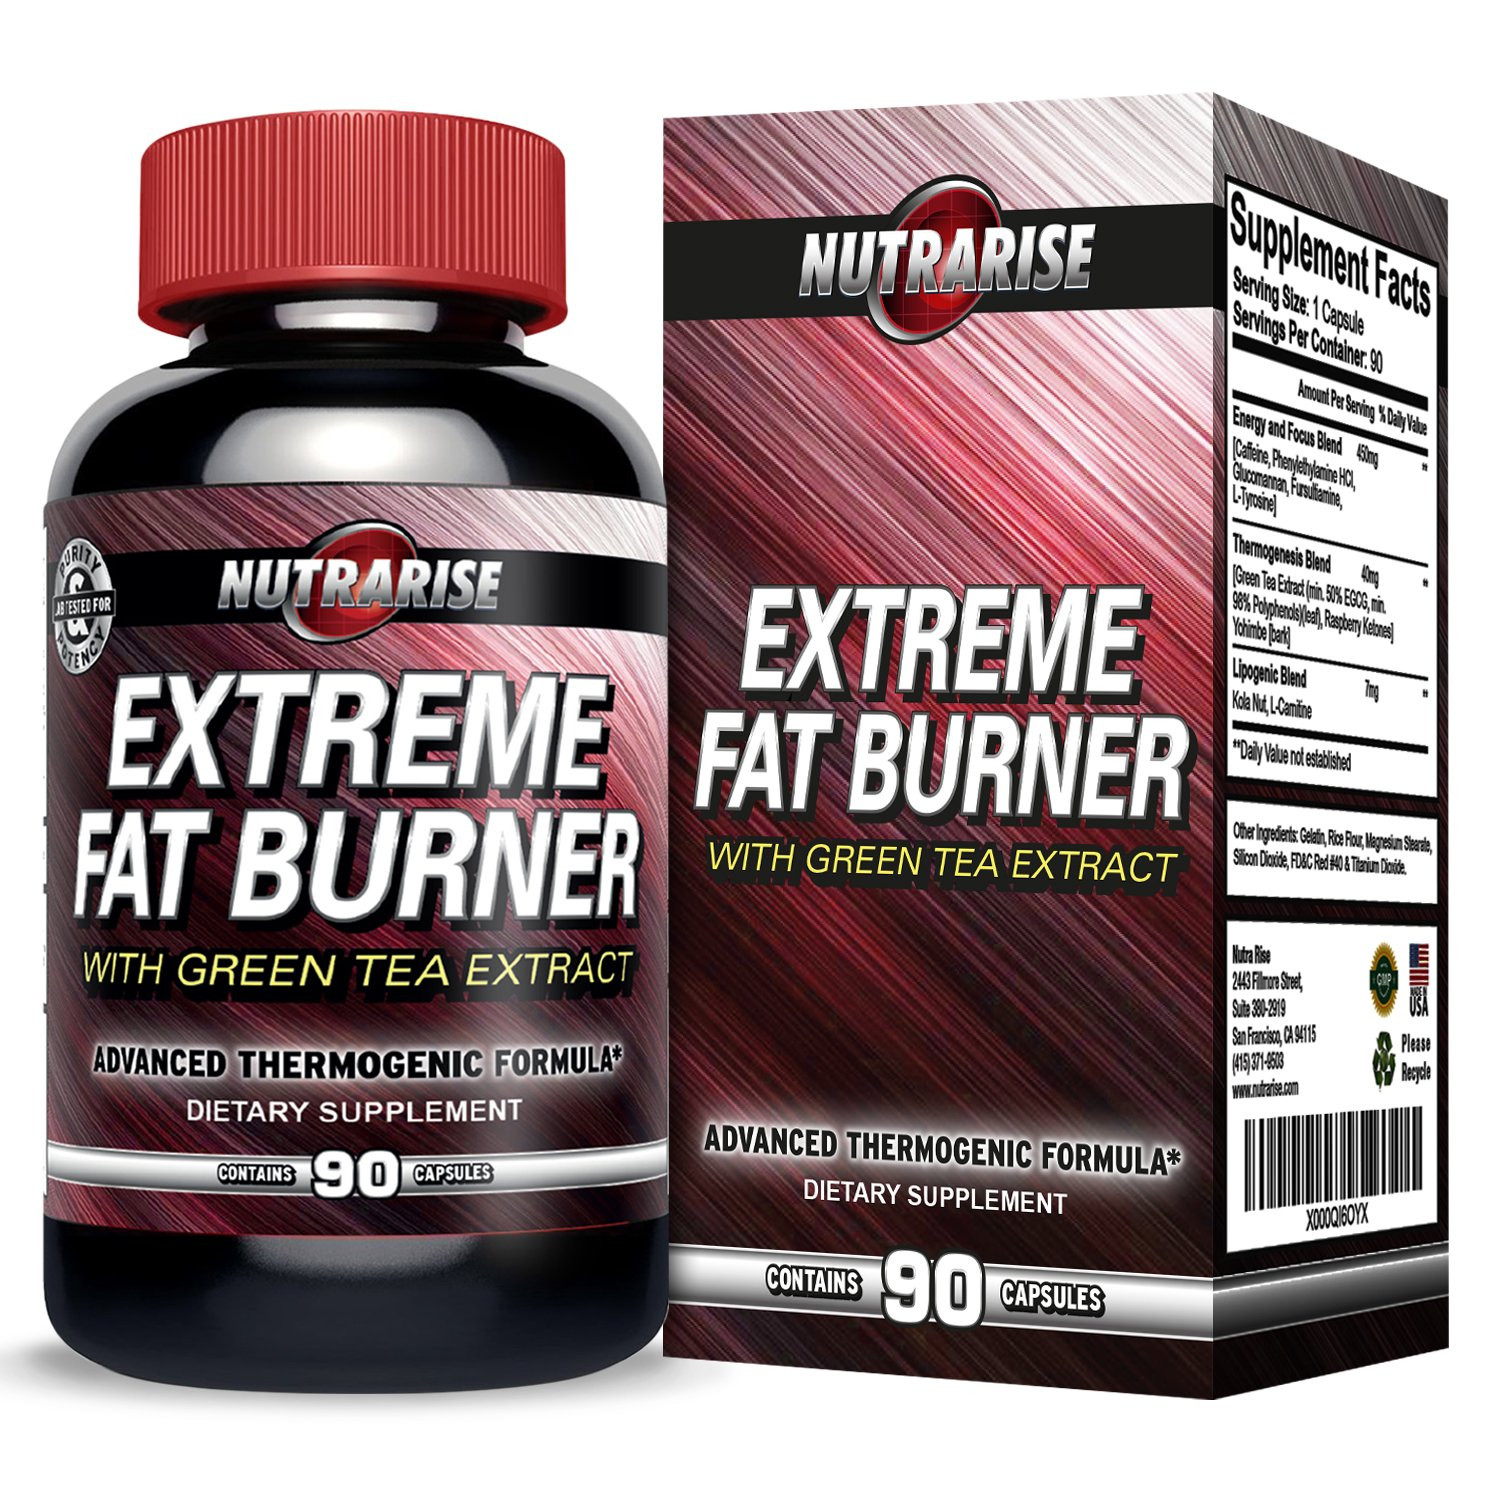 Weight Loss Supplements For Women Fat Burning  Amazon Belly Blaster PM Night Time Weight Loss Pill